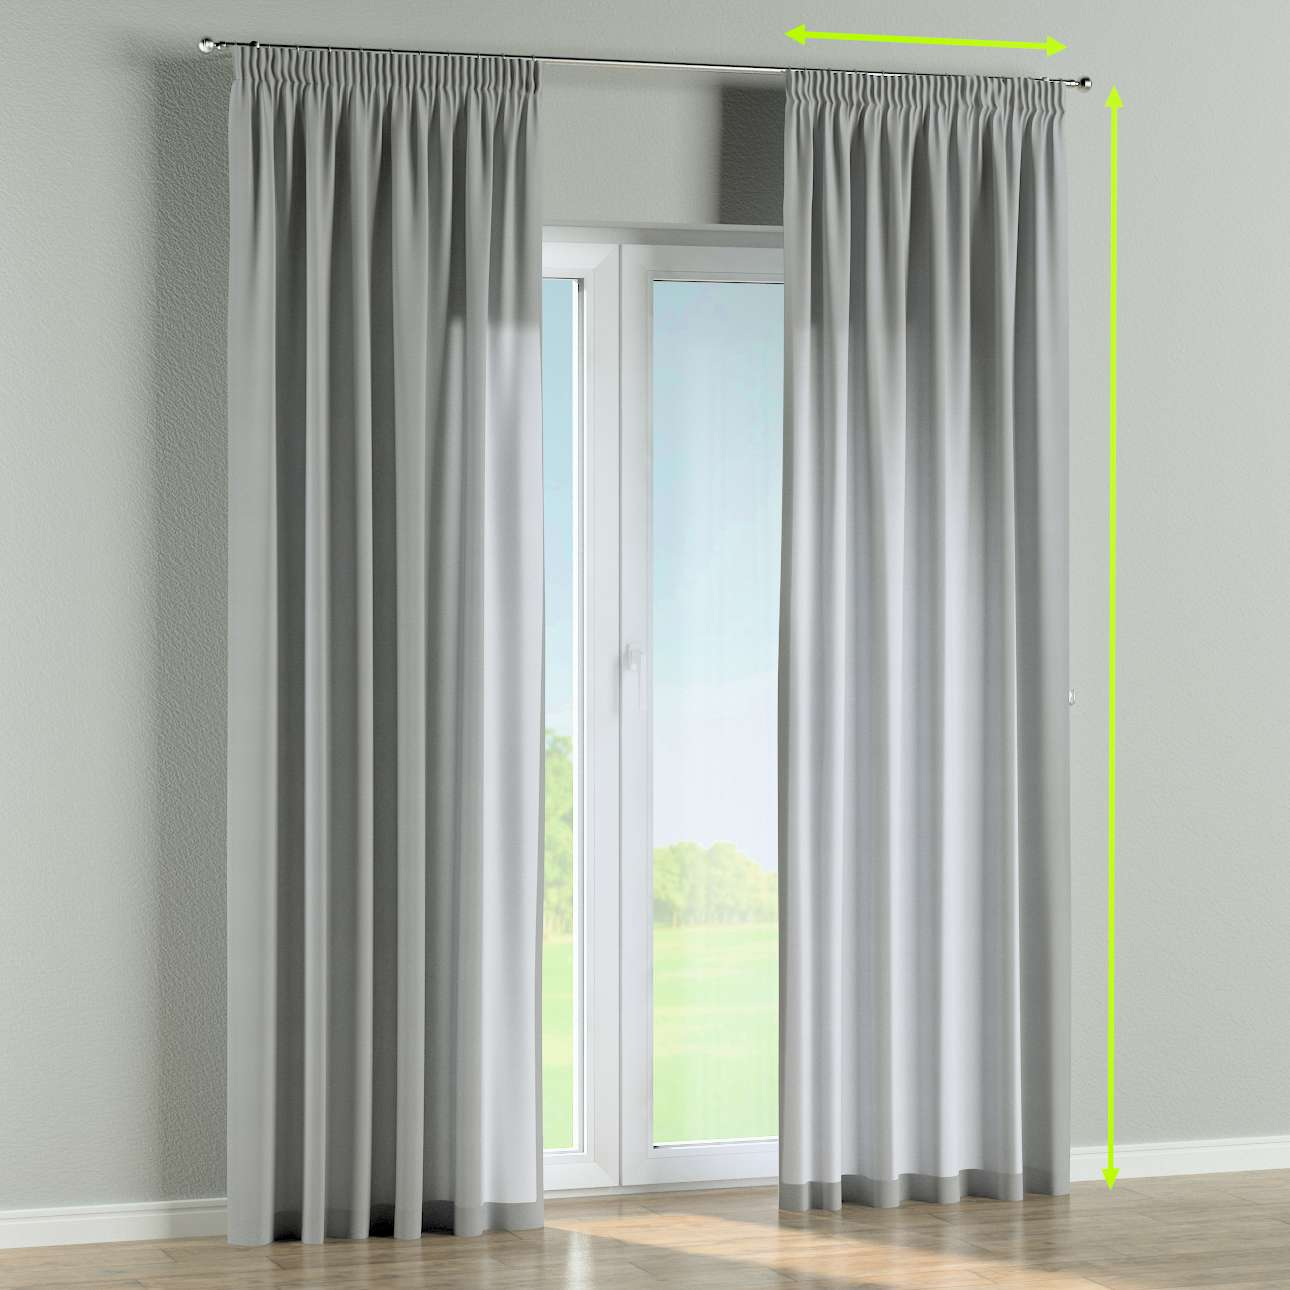 Pencil pleat curtain in collection Jupiter, fabric: 127-98